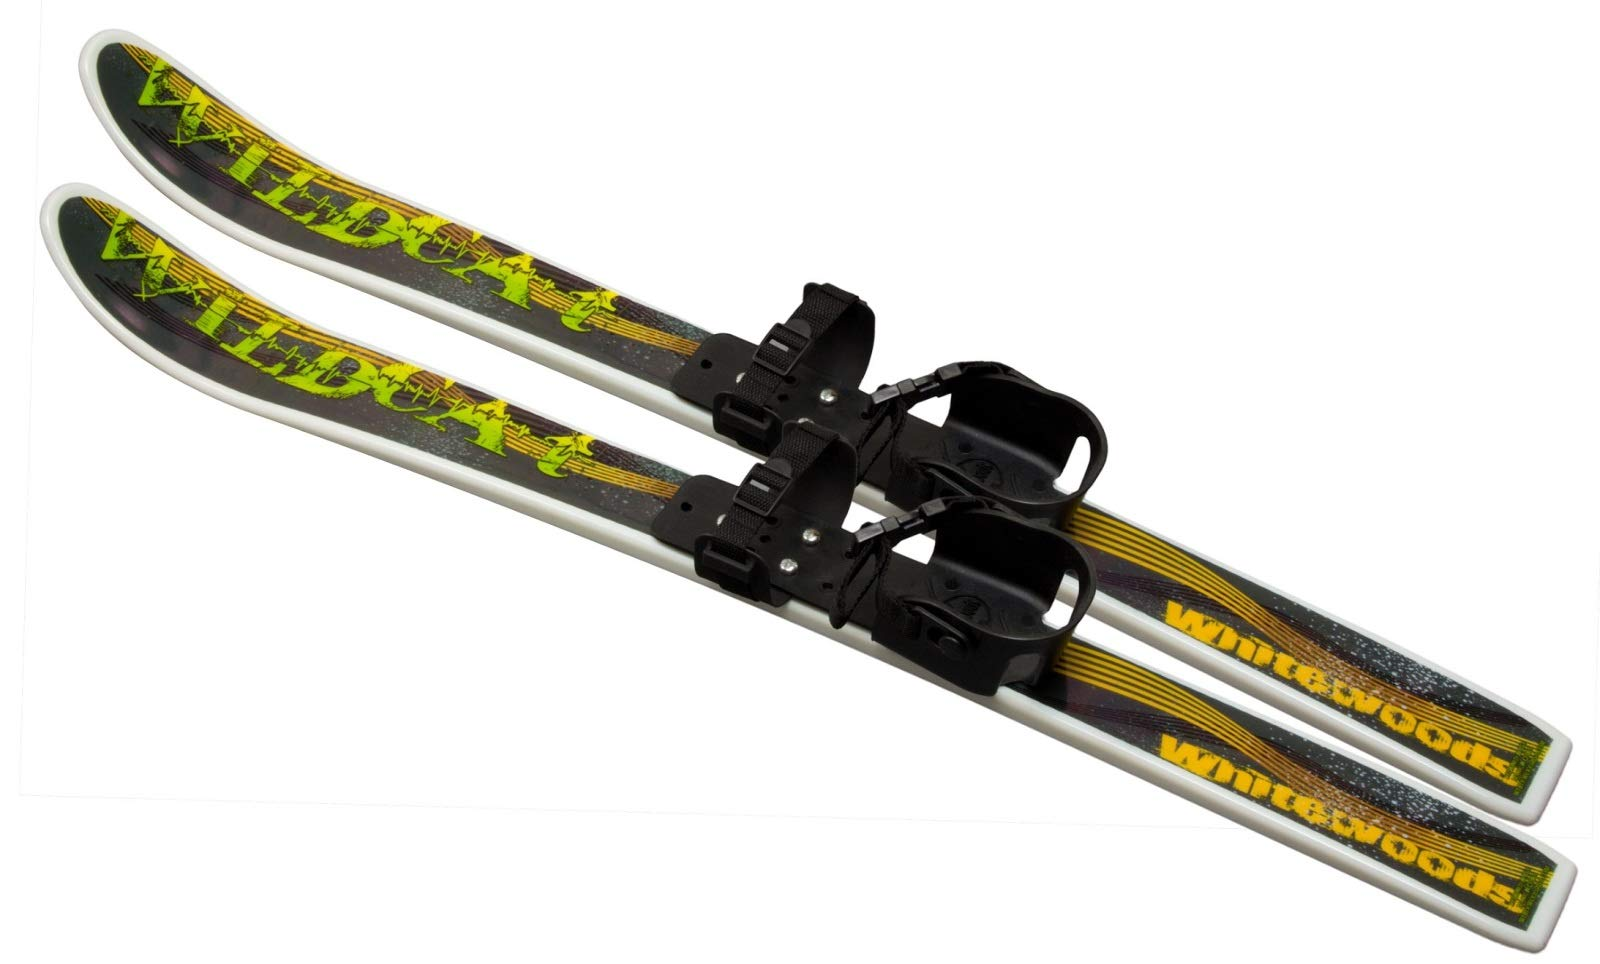 Whitewoods by Erik Sports, Wildcat 95cm Junior Cross Country Backyard Ski Set, Waxless Base, Ages 4-8 by Whitewoods